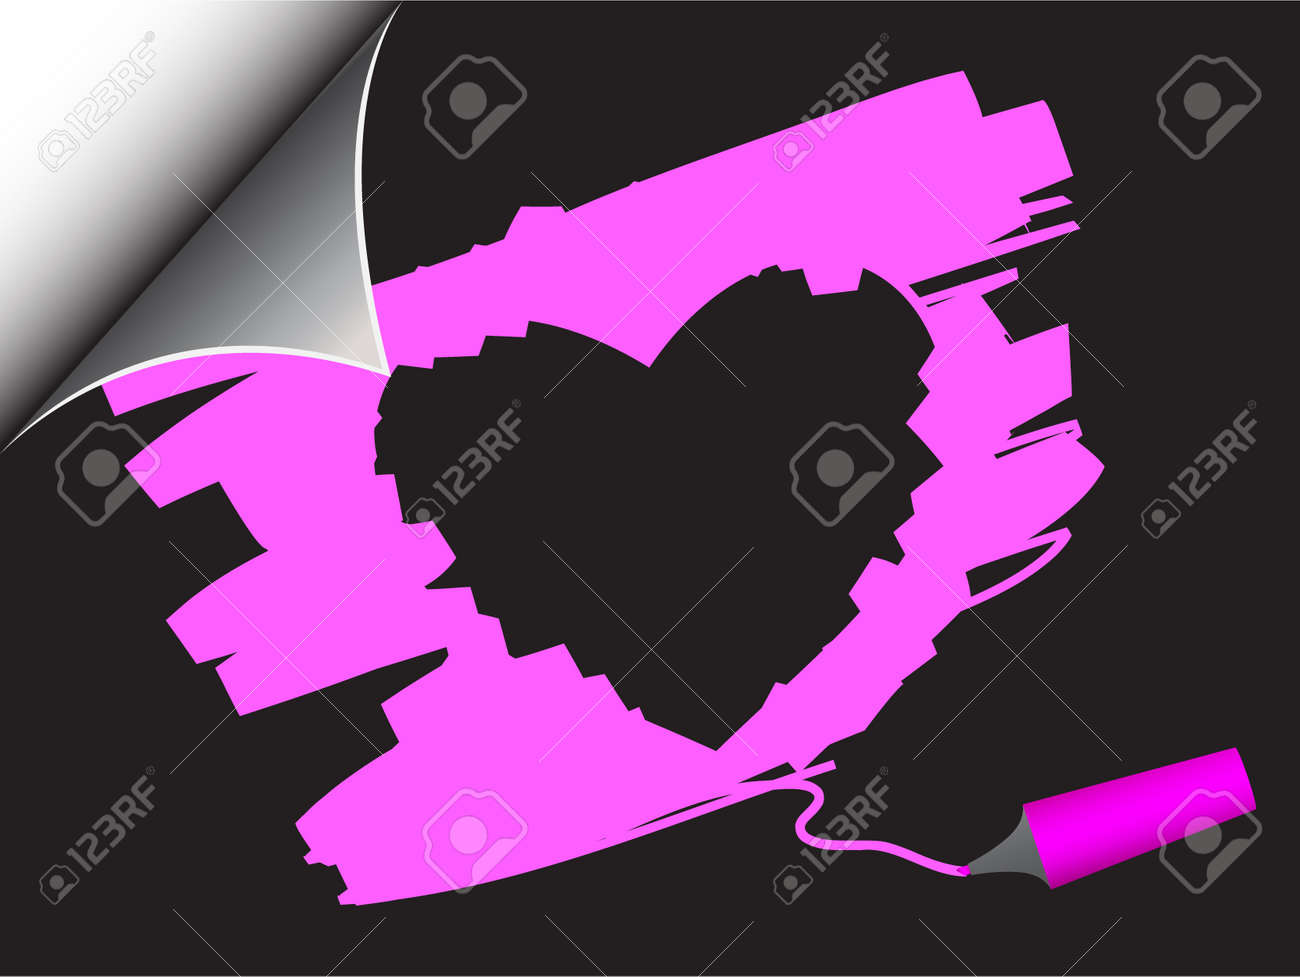 Vector - Black paper with realistic page curl and valentine's heart scribble. Copy space for image or text. Stock Vector - 2472121